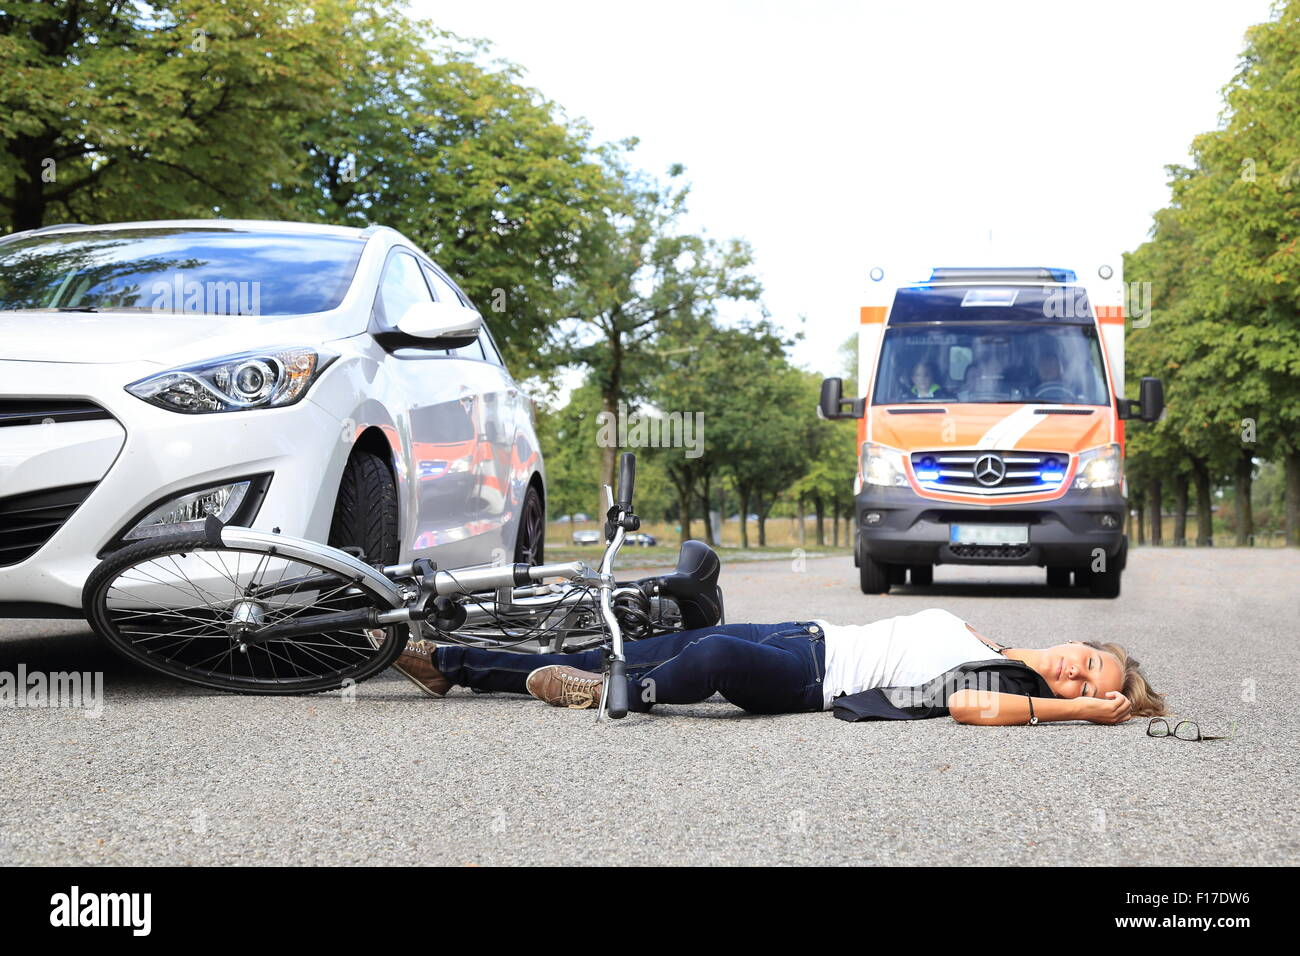 A Young Woman with bicycle accident and comming ambulance car - Stock Image